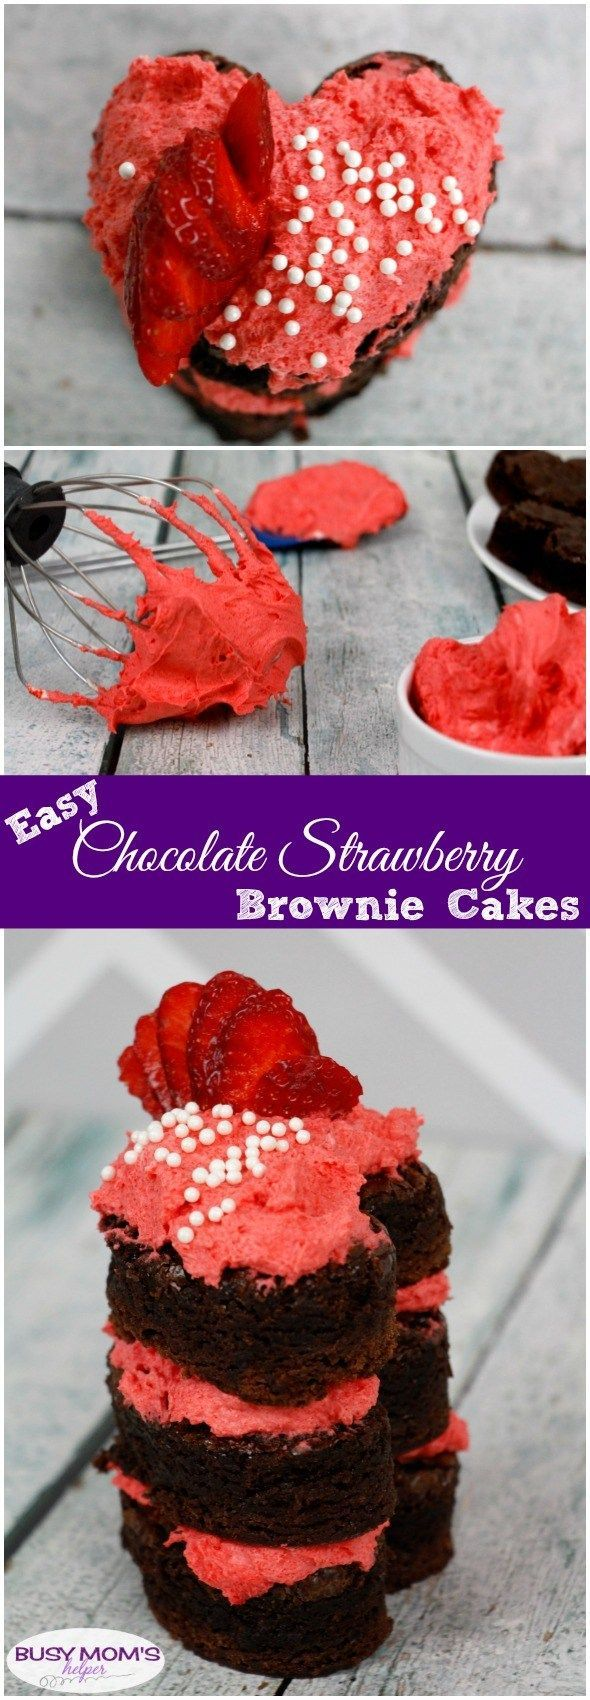 Easy Chocolate Strawberry Brownie Cakes Chocolate Strawberry Brownie Cakes, a perfect Valentines Day Recipe that's simple to make! I love easy recipes that taste amazing! Chocolate Strawberry Brownie Cakes Chocolate Strawberry Brownie Cakes, a perfect Valentines Day Recipe that's simple to make! I love easy recipes that taste amazing!Chocolate Strawberry Brownie Cakes, a perfect Valentines Day Recipe that's simple to make! I love easy recipes that taste amazing!